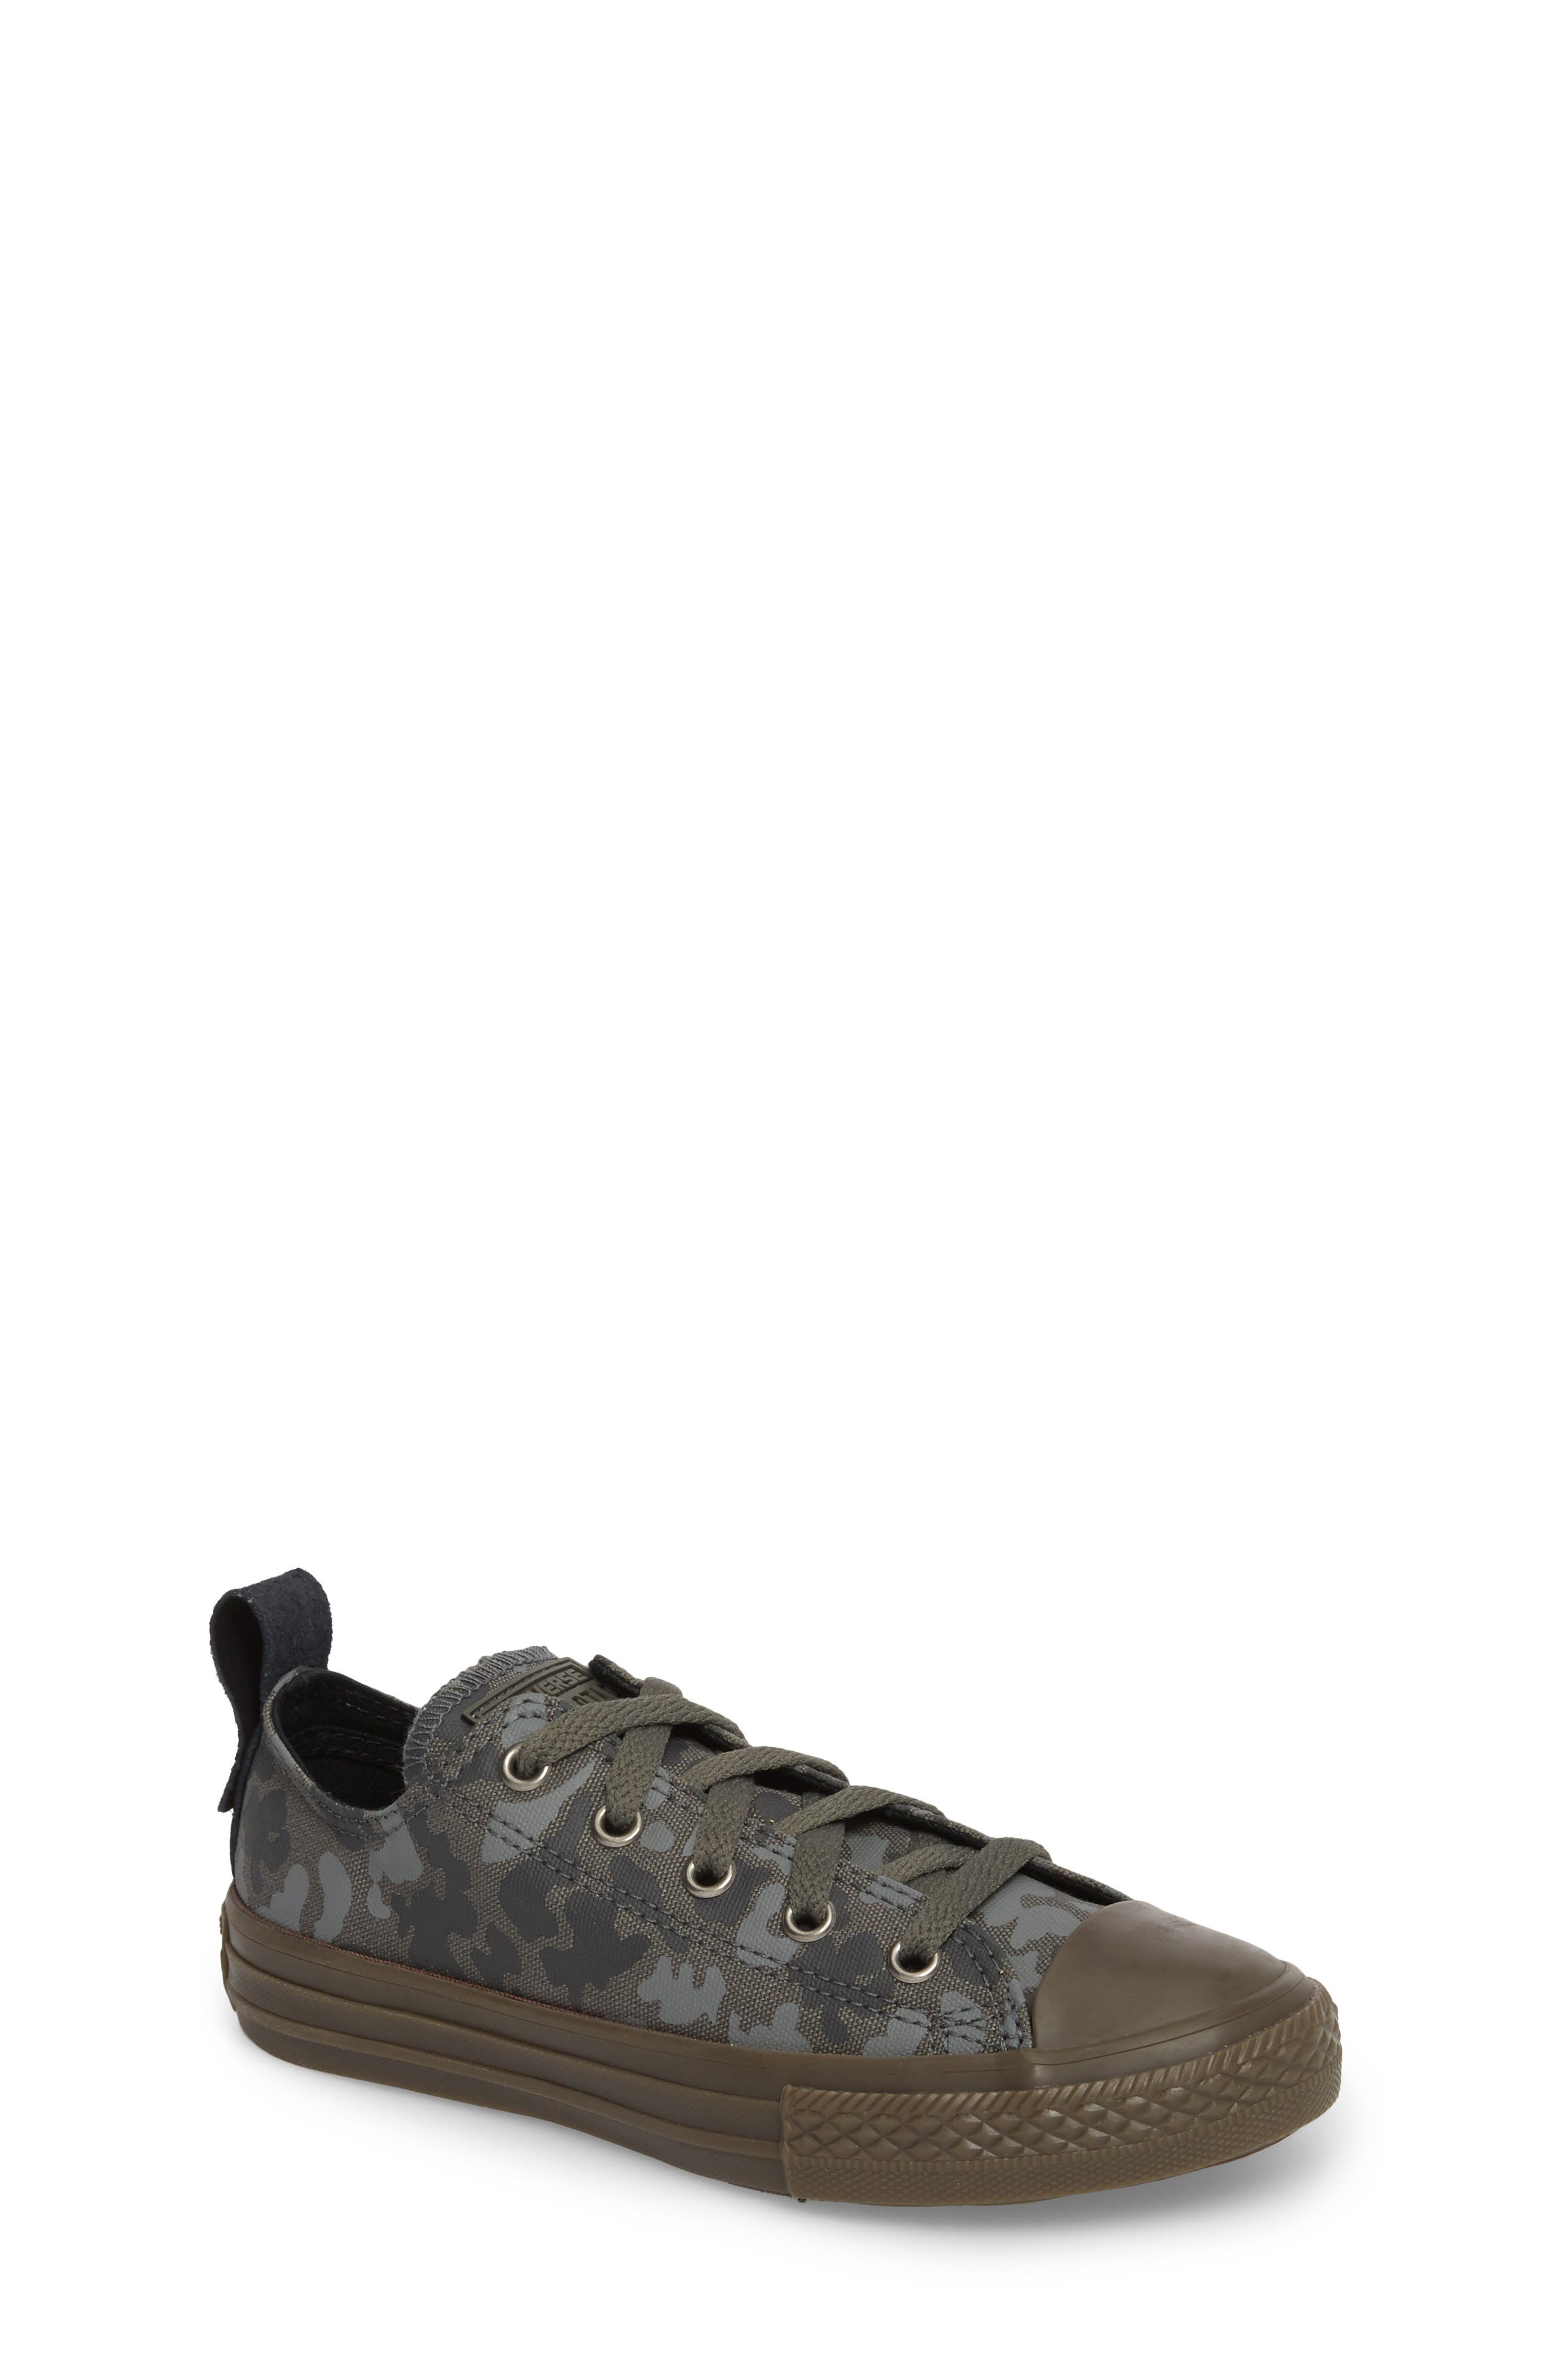 Chuck Taylor<sup>®</sup> All Star<sup>®</sup> Camo Ox Low Top Sneaker,                             Main thumbnail 1, color,                             Mason